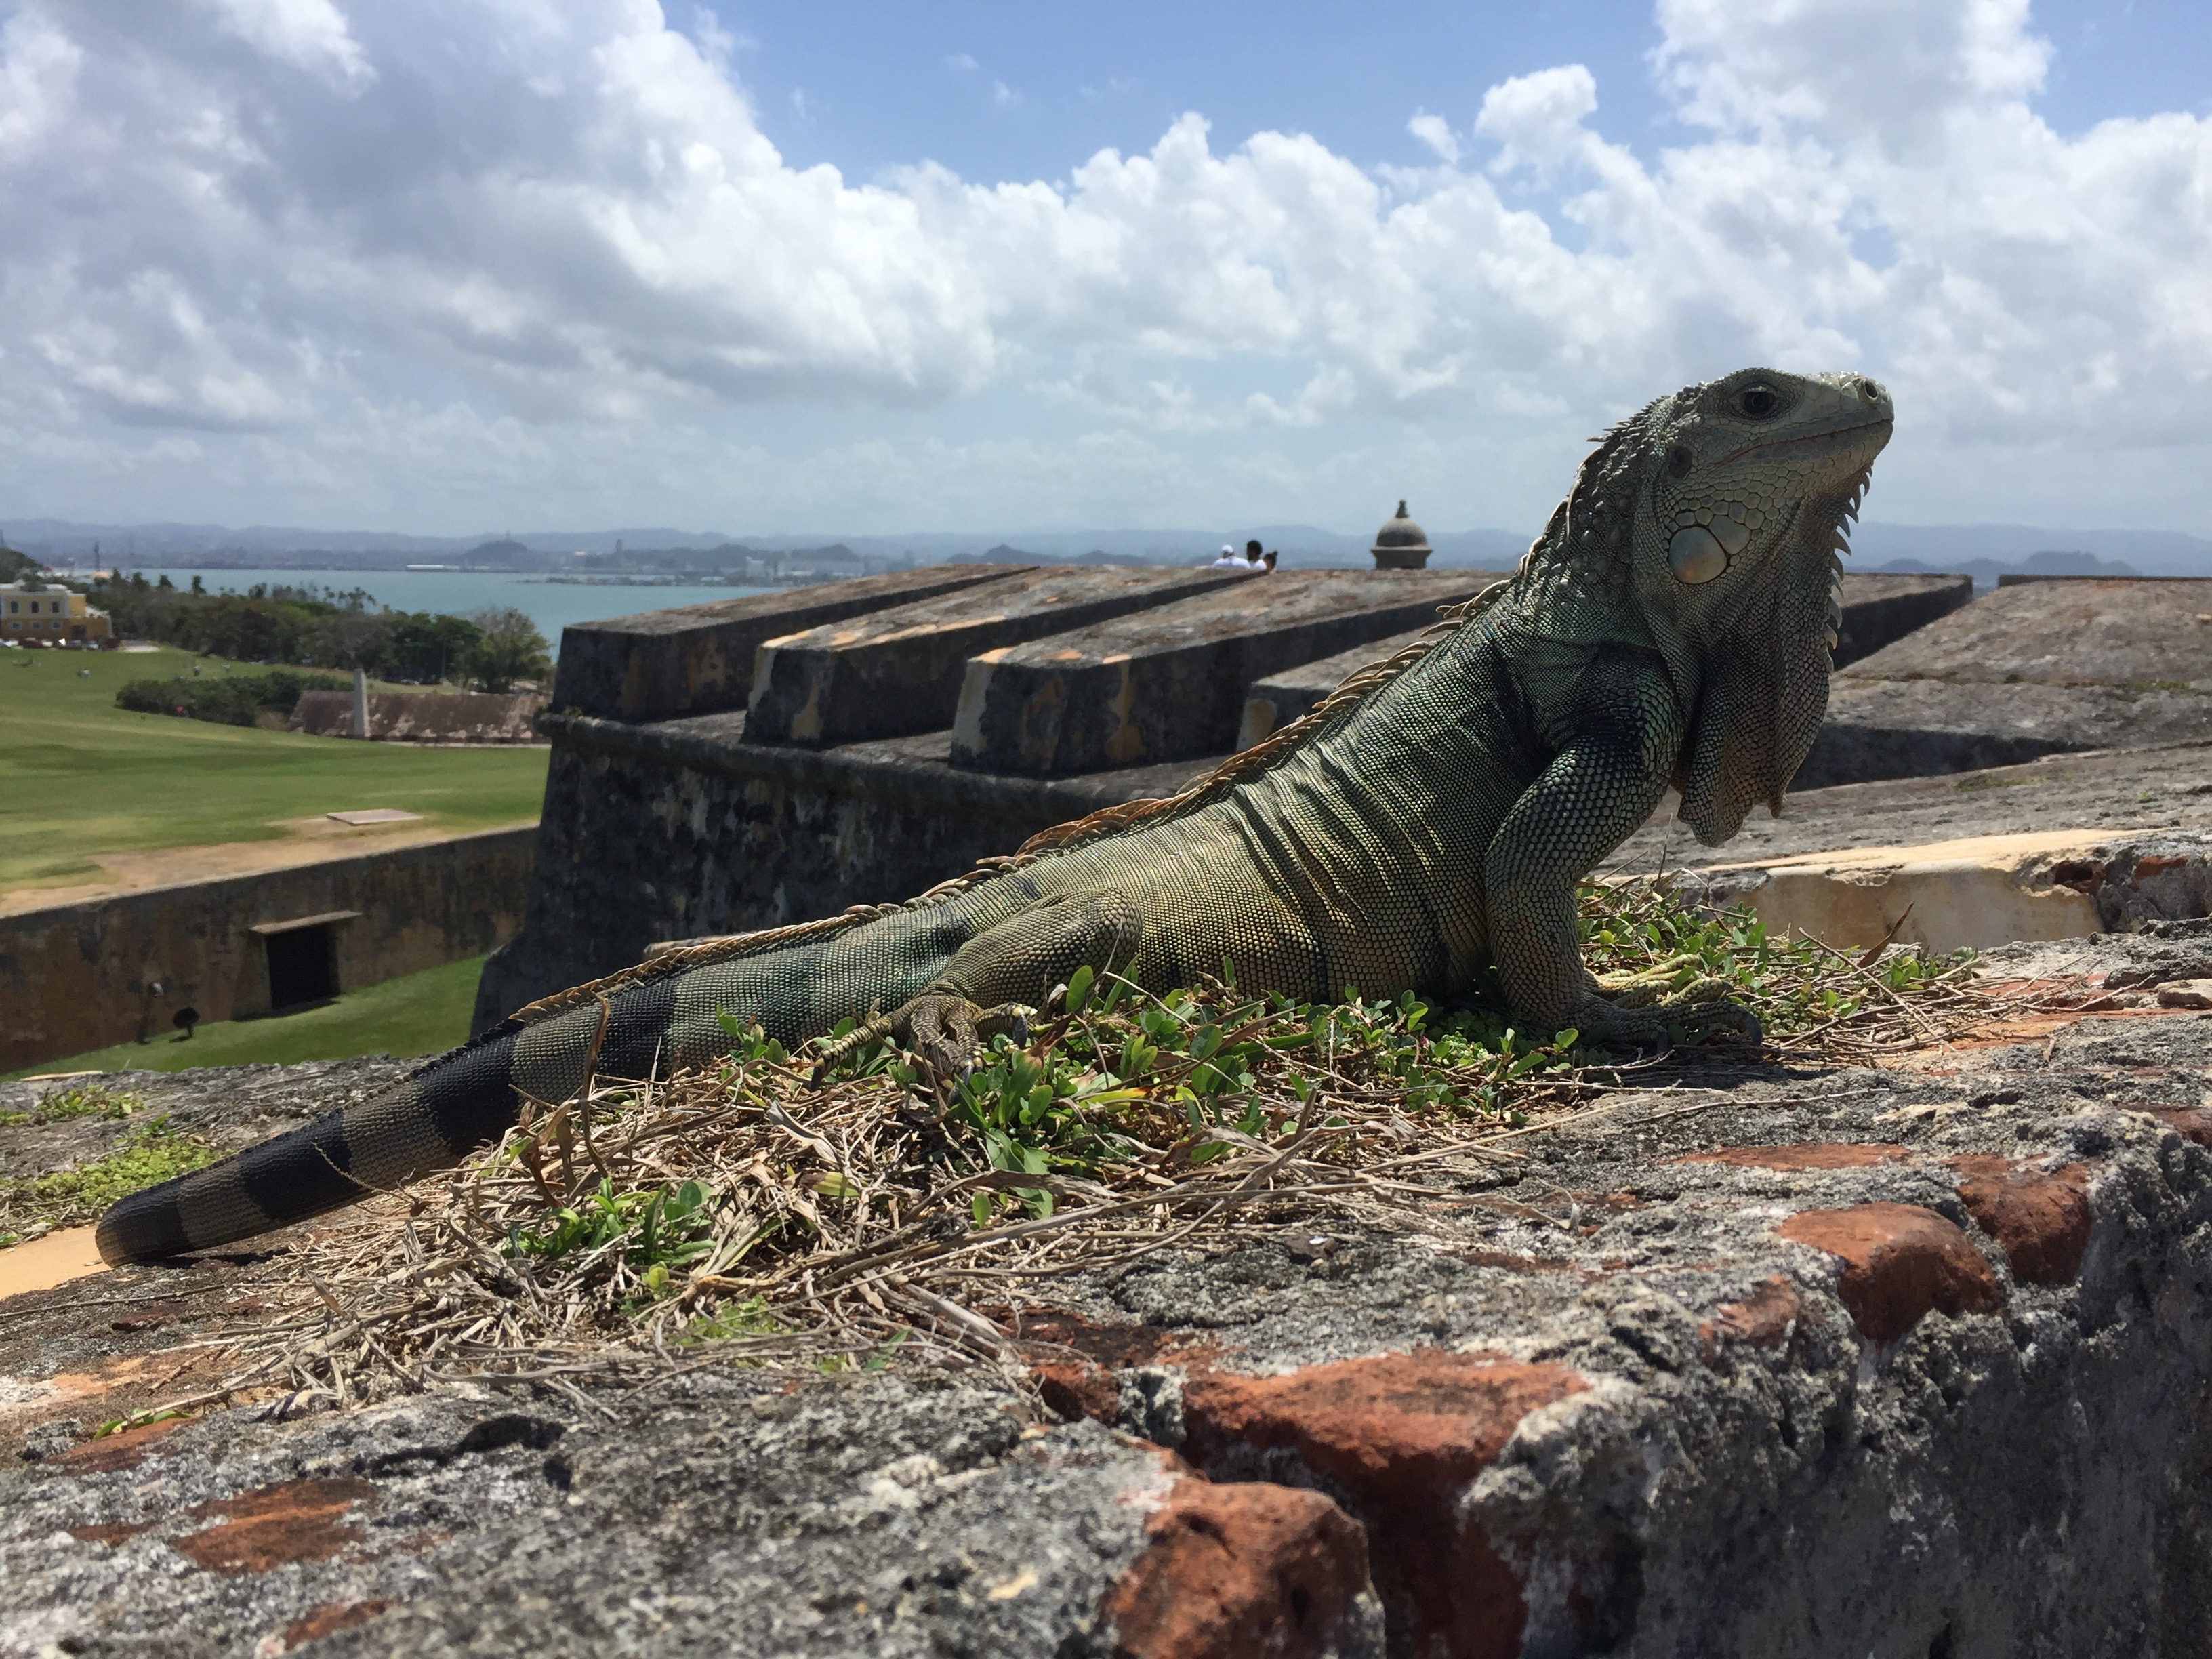 An Iguana at the Fort in San Juan